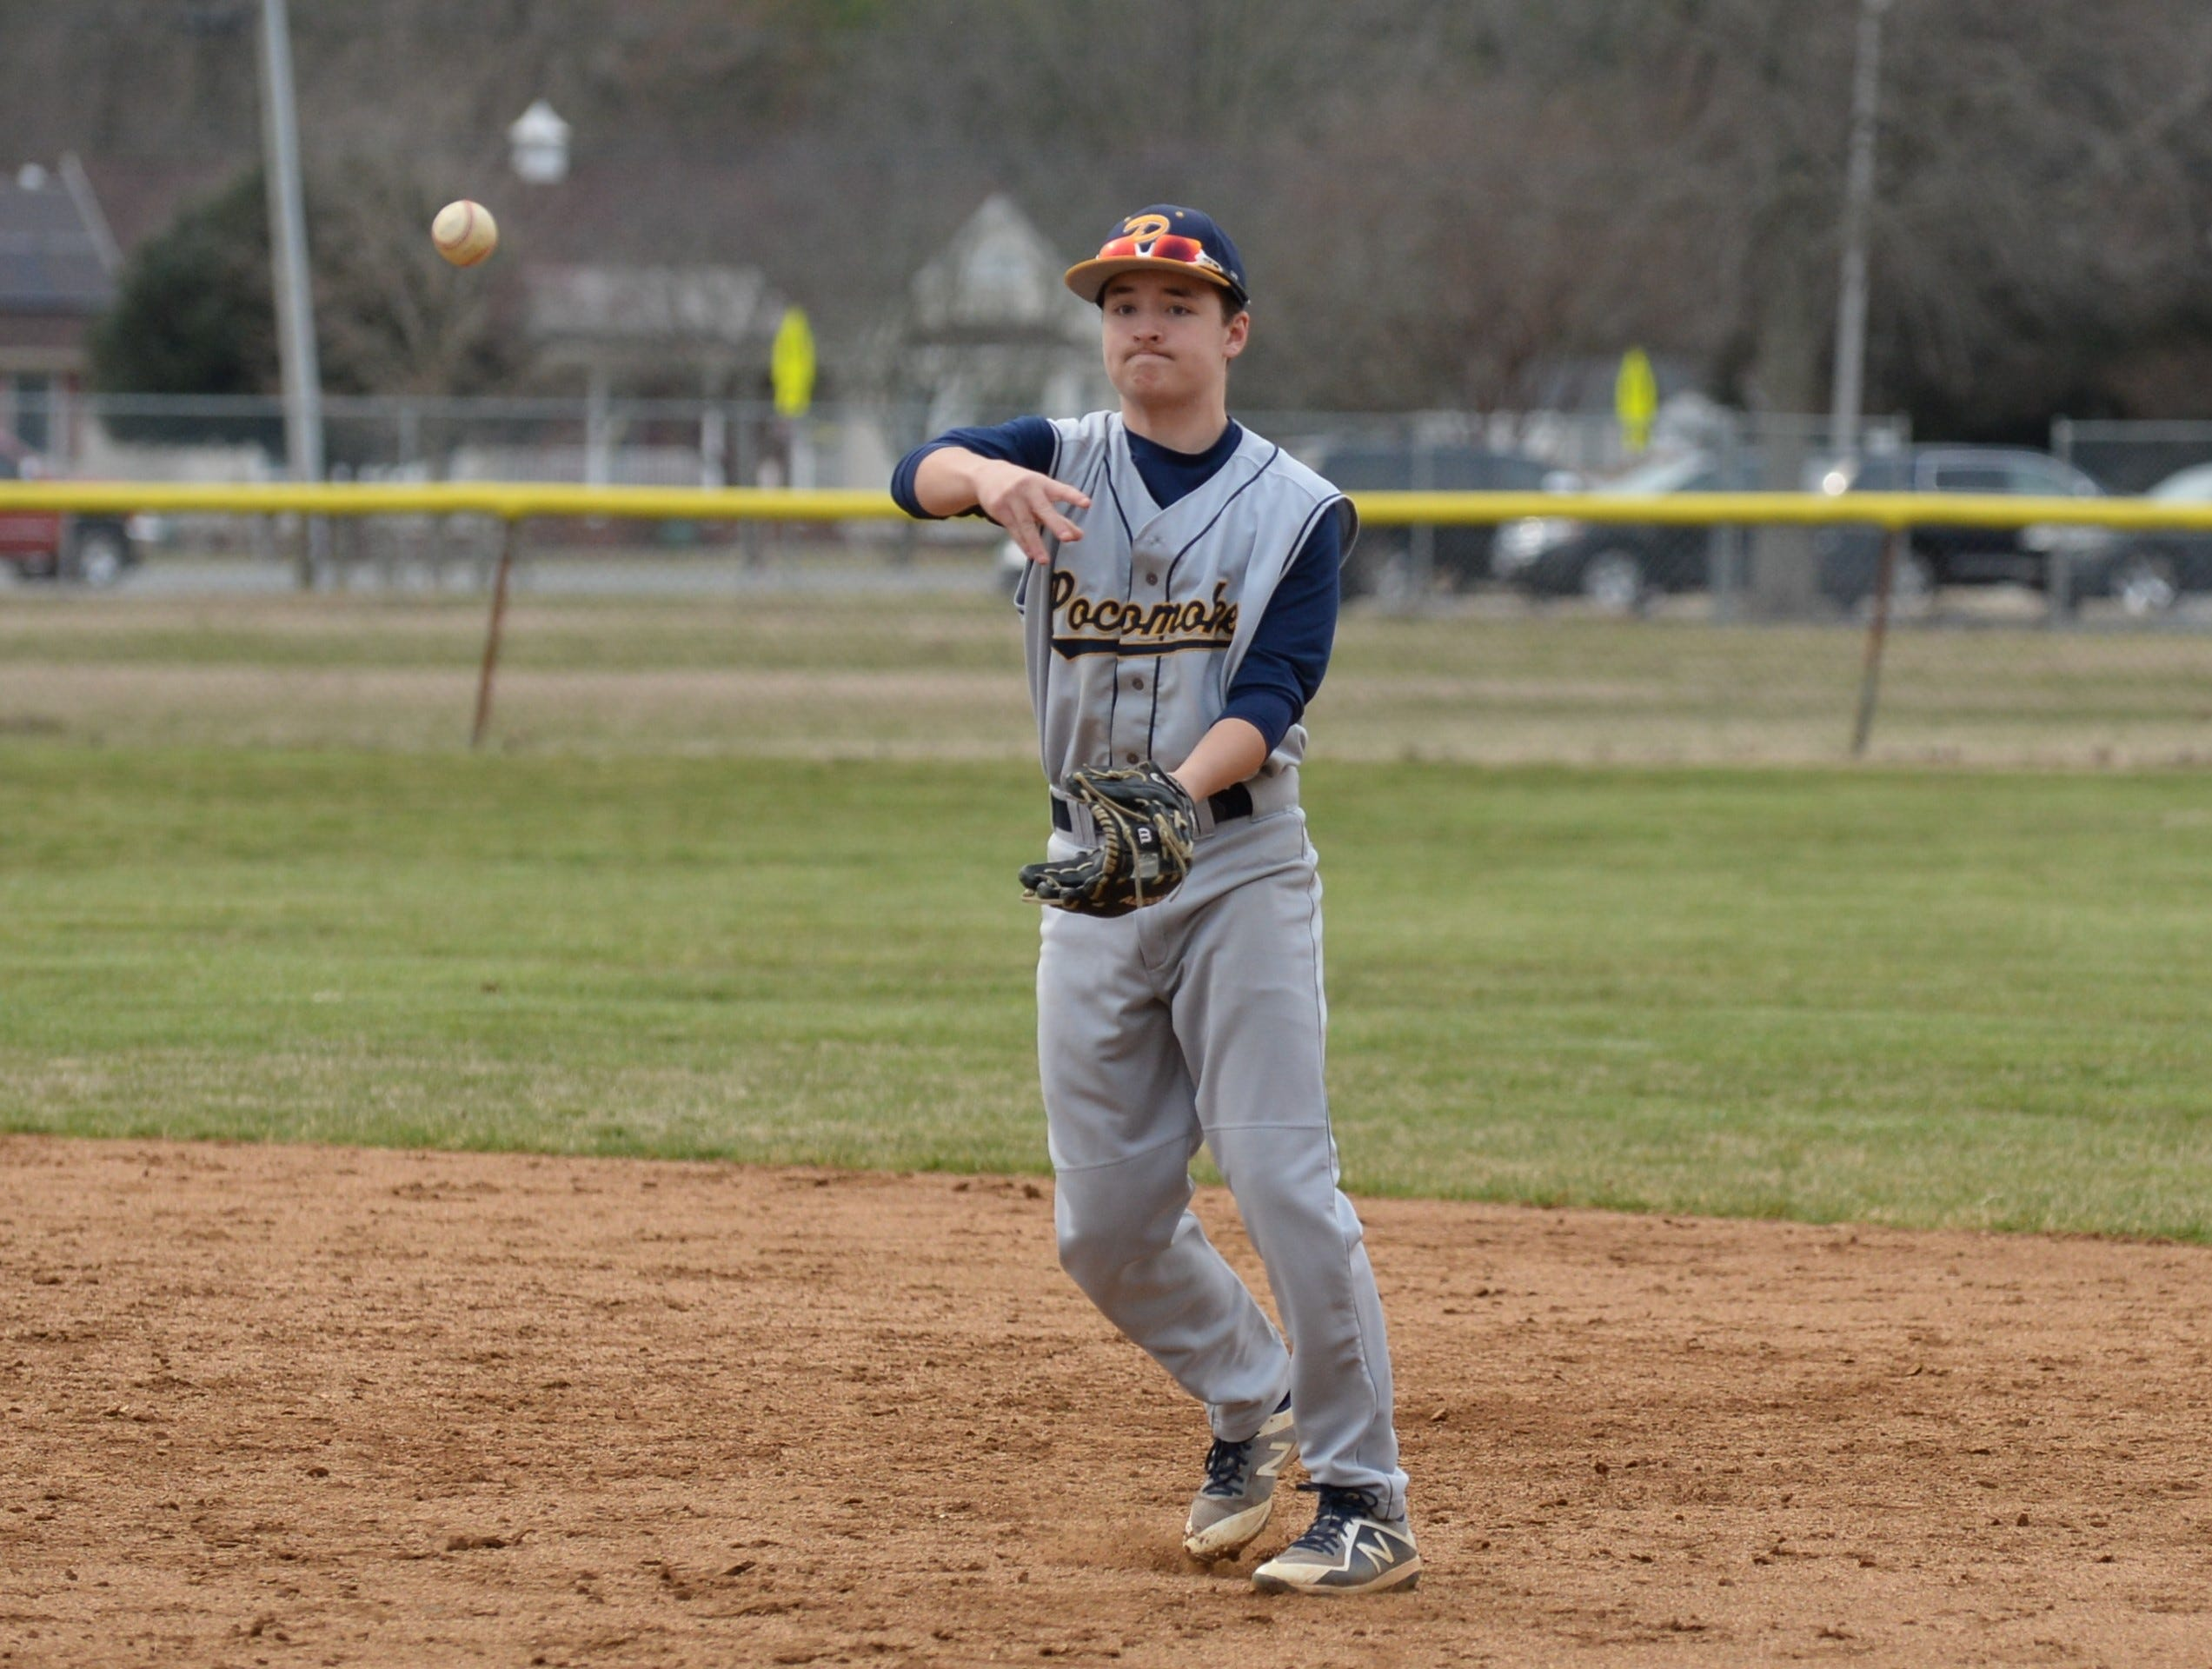 Pocomoke's second baseman makes a throw to first against Mardela on Monday, March 25, 2019.